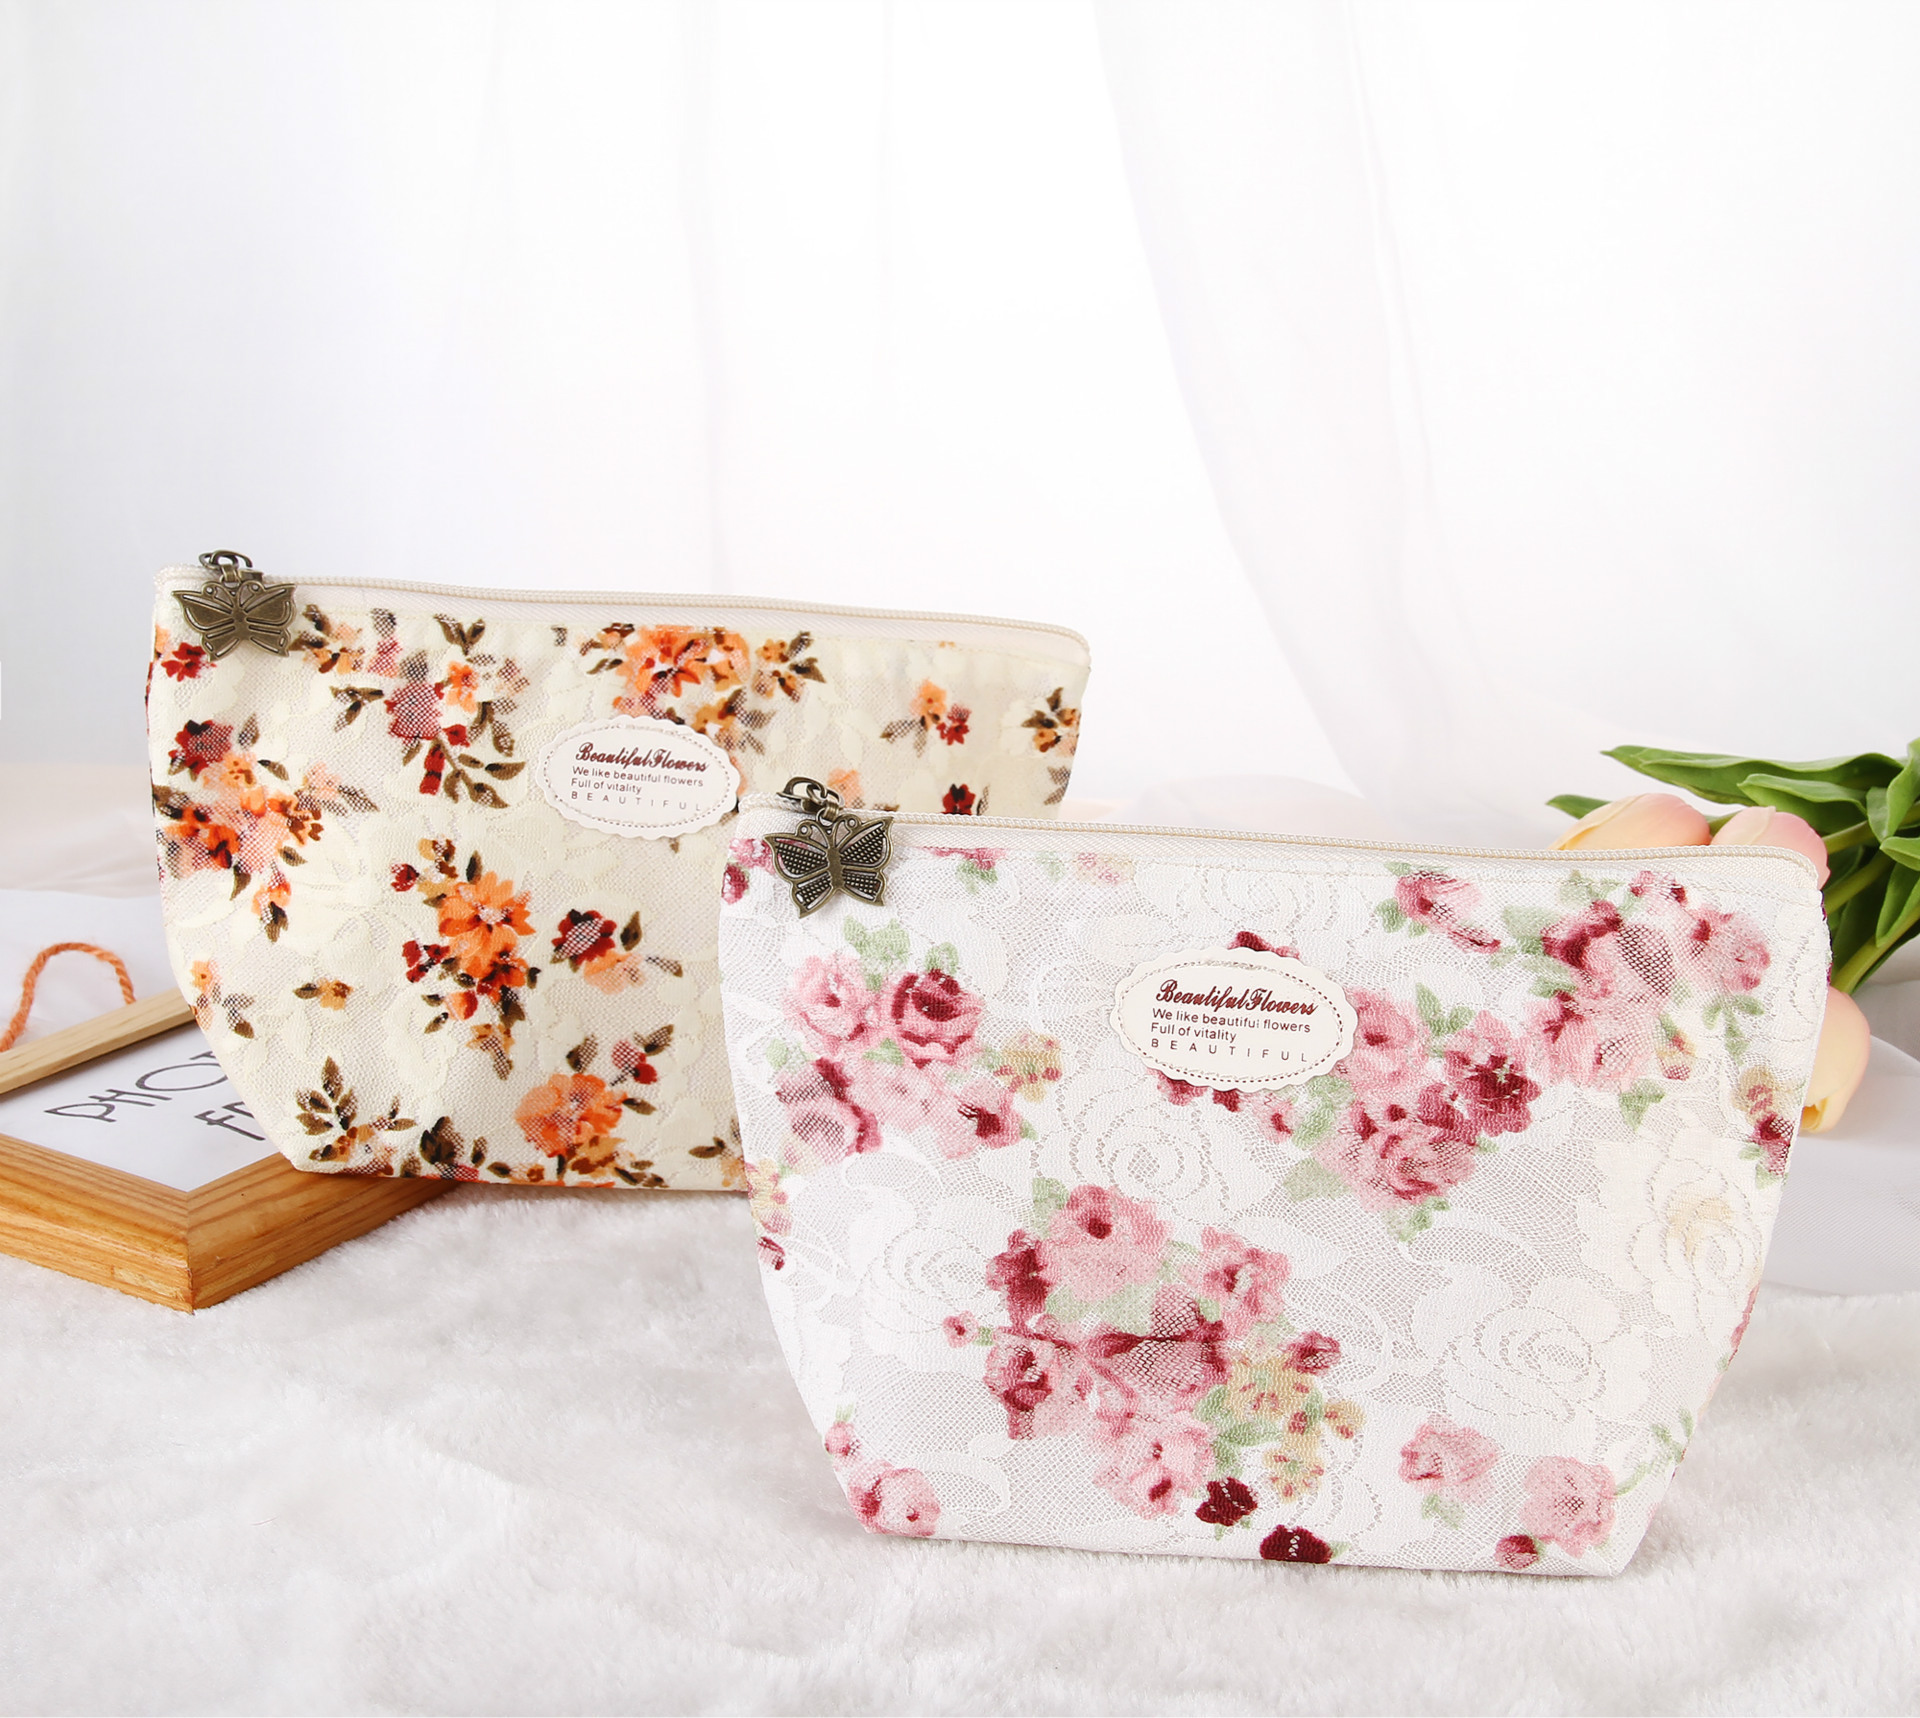 Fresh Summer New Lace Flower Women  Cosmetic bag Makeup bag Trave Zipper Case Ladies Organizer Toiletry bag kits Wash pouch new fashion women mini cosmetic bag organizer women toiletry bag makeup bag bolsa de cosmeticos acb597a